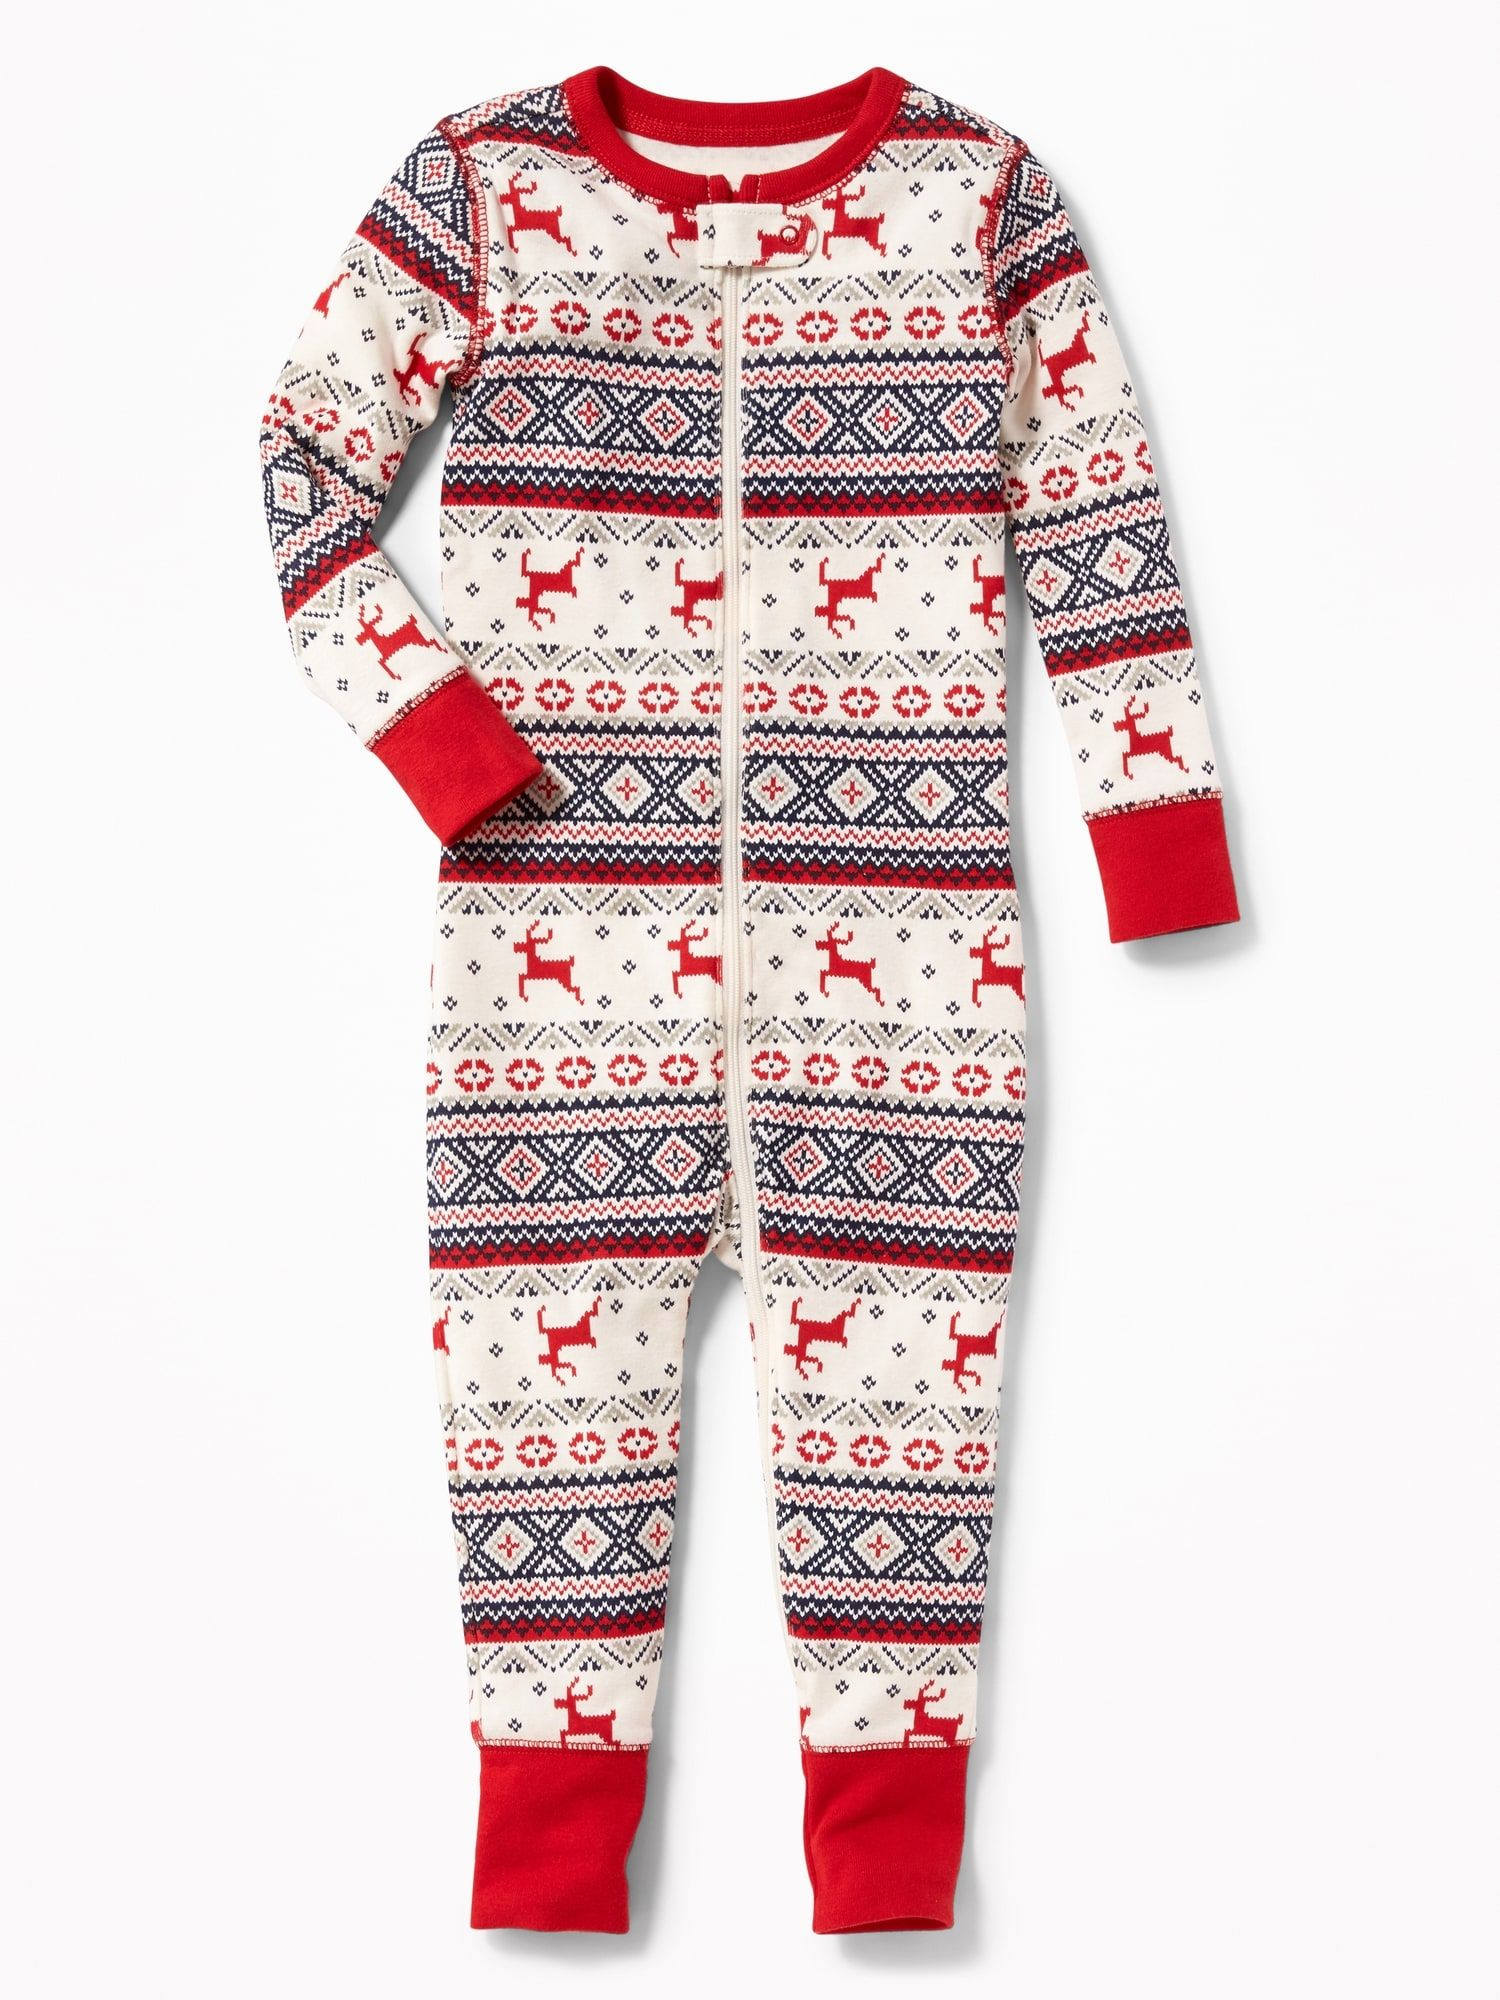 Holiday-Print One-Piece Sleeper for Toddler & Baby | Old ...